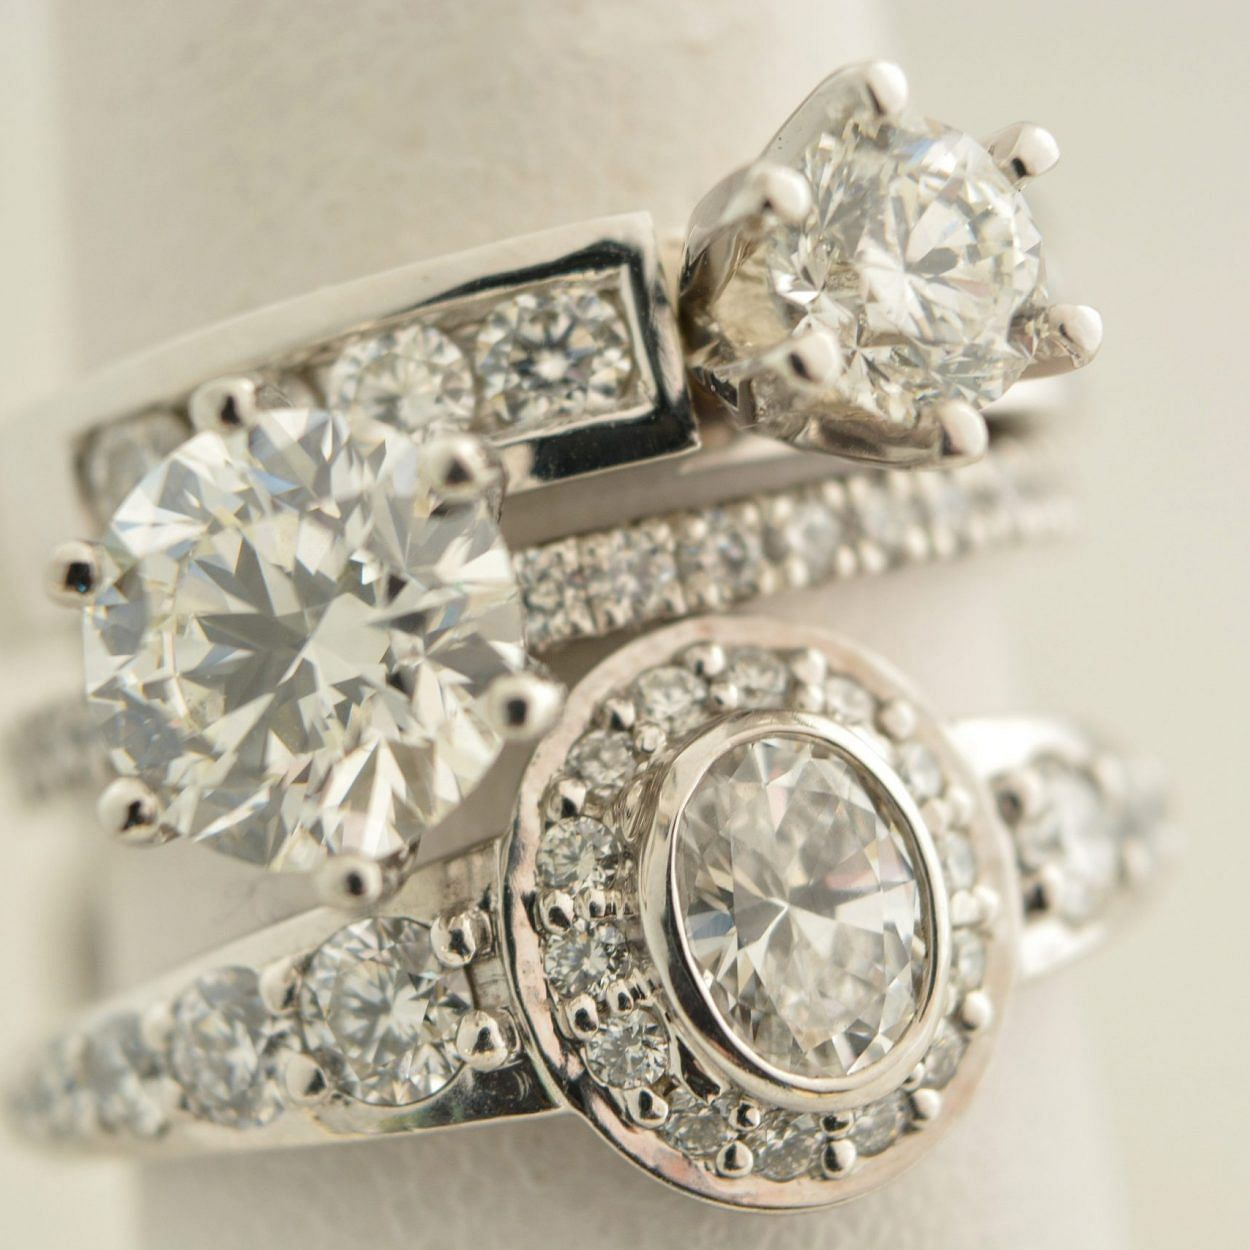 Why are Natural Diamonds more expensive than Lab Grown Diamonds?